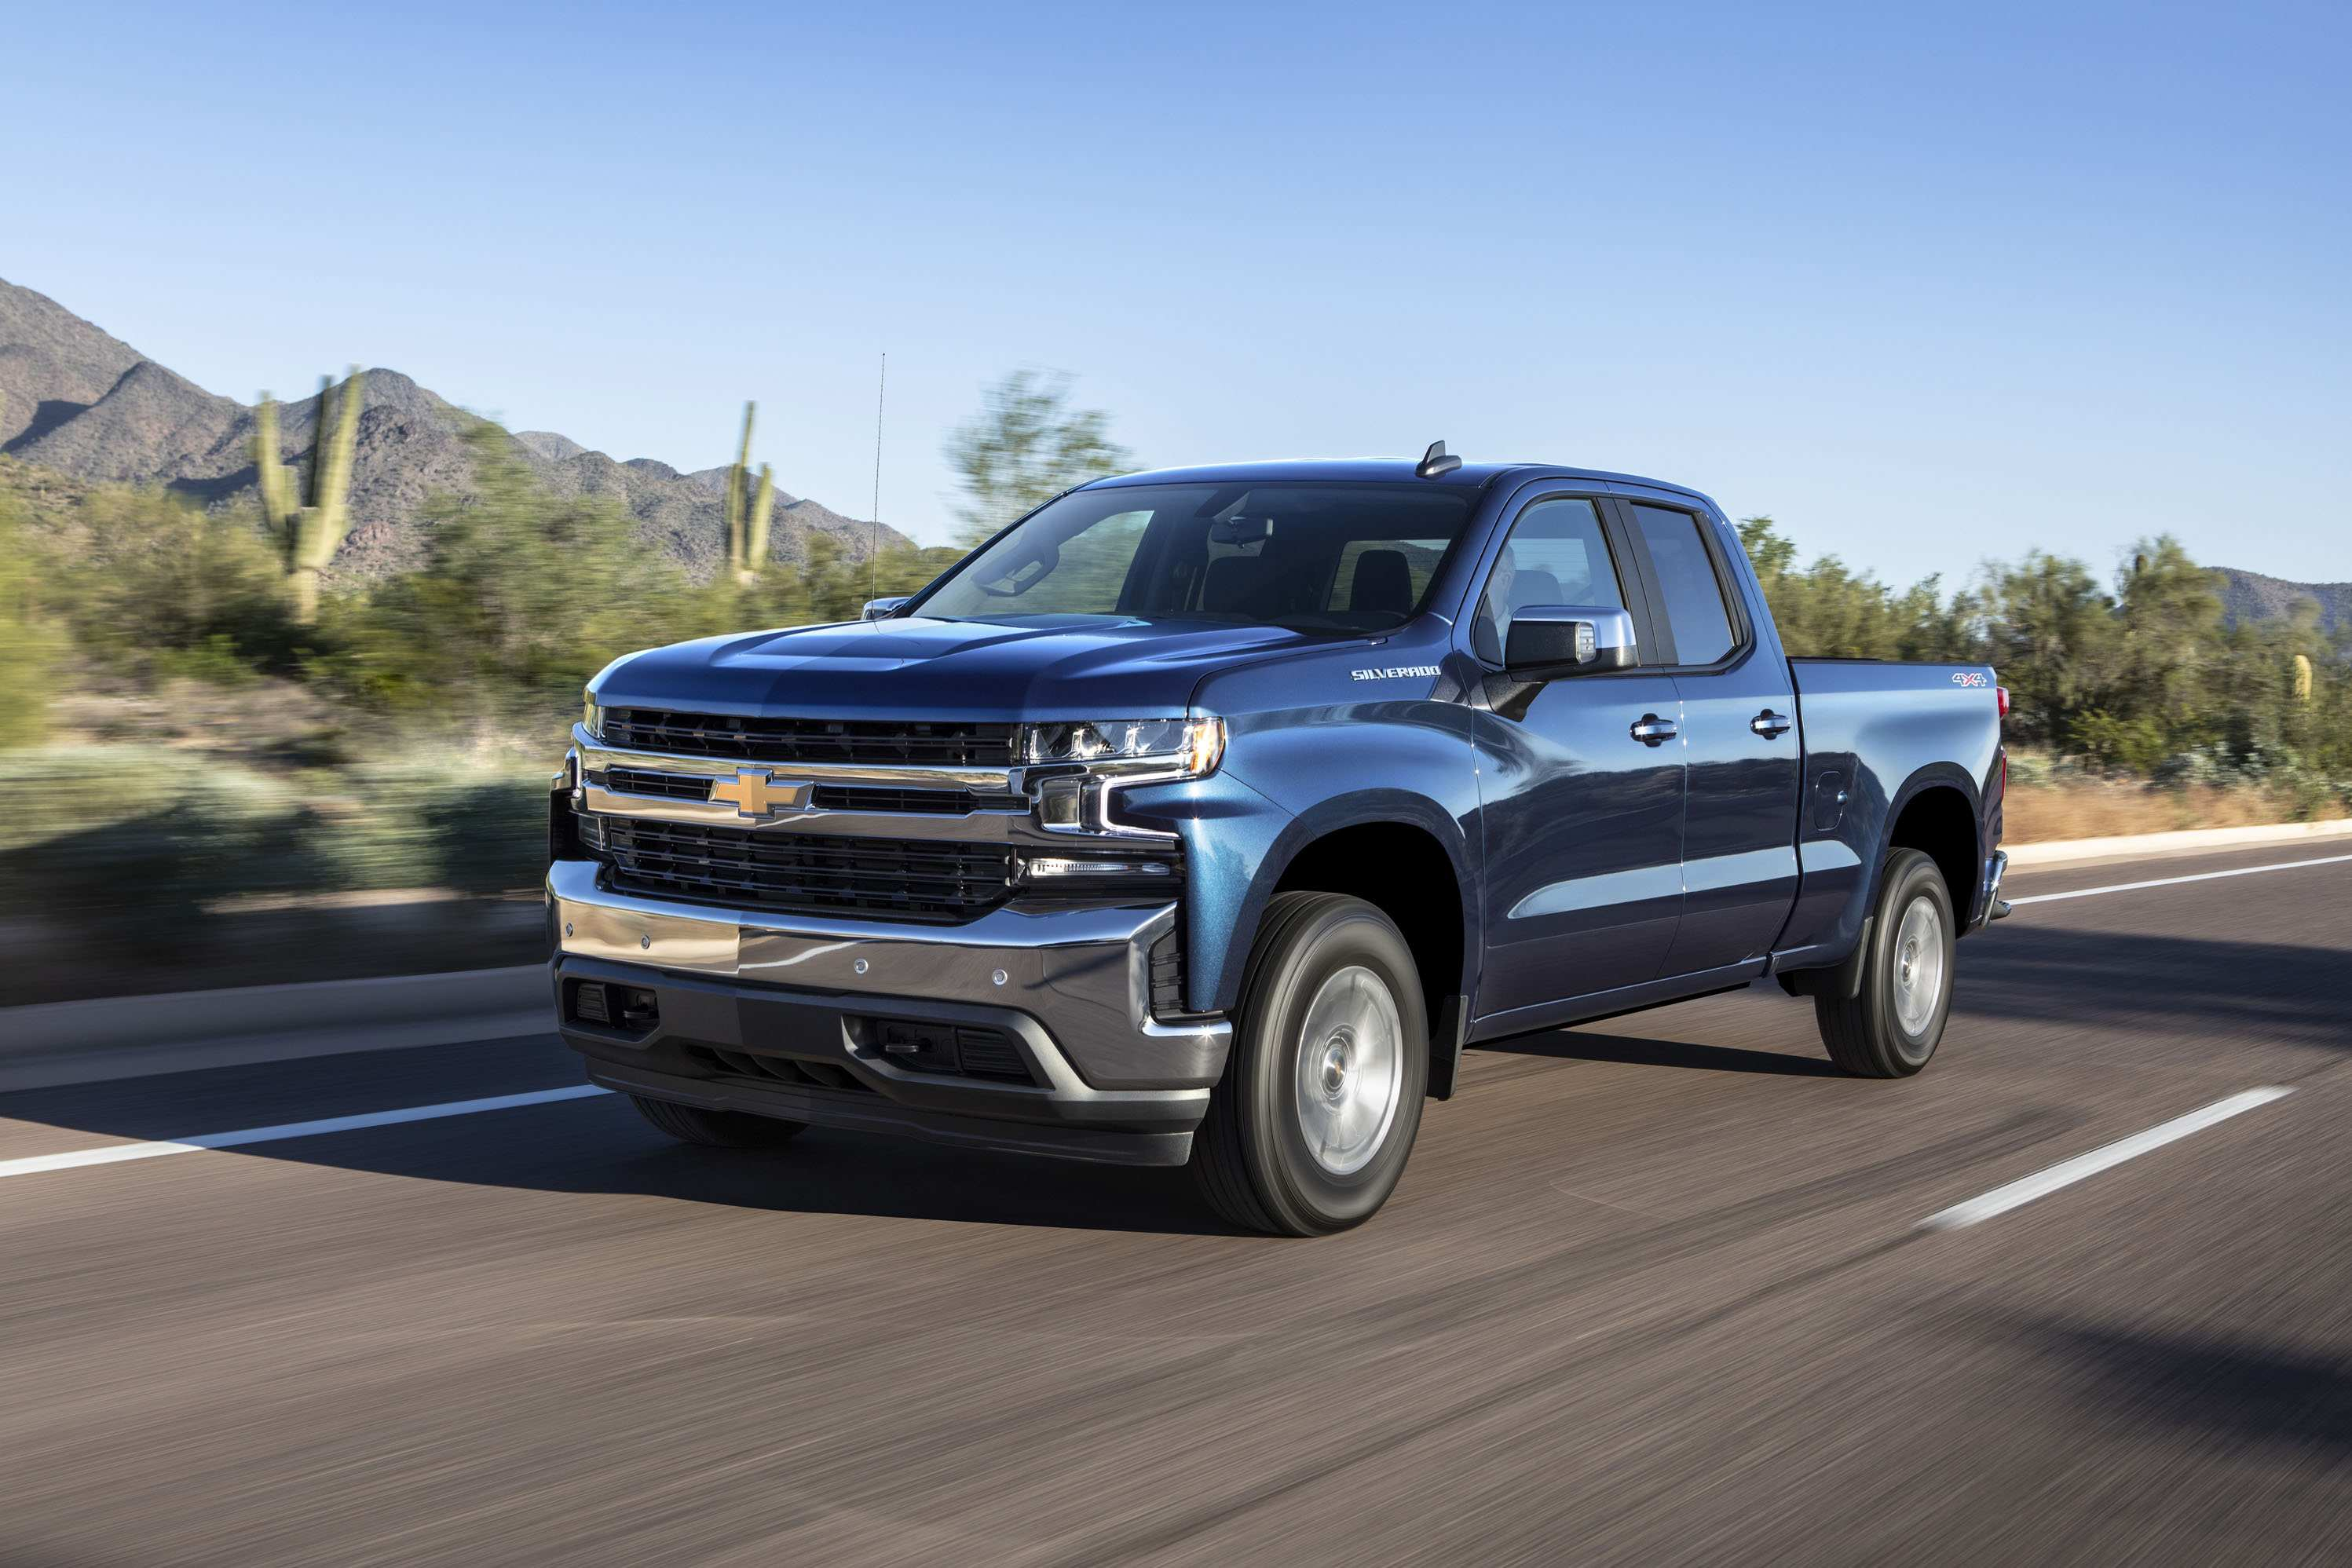 24 New 2019 Chevrolet Silverado 1500 Review Pricing by 2019 Chevrolet Silverado 1500 Review